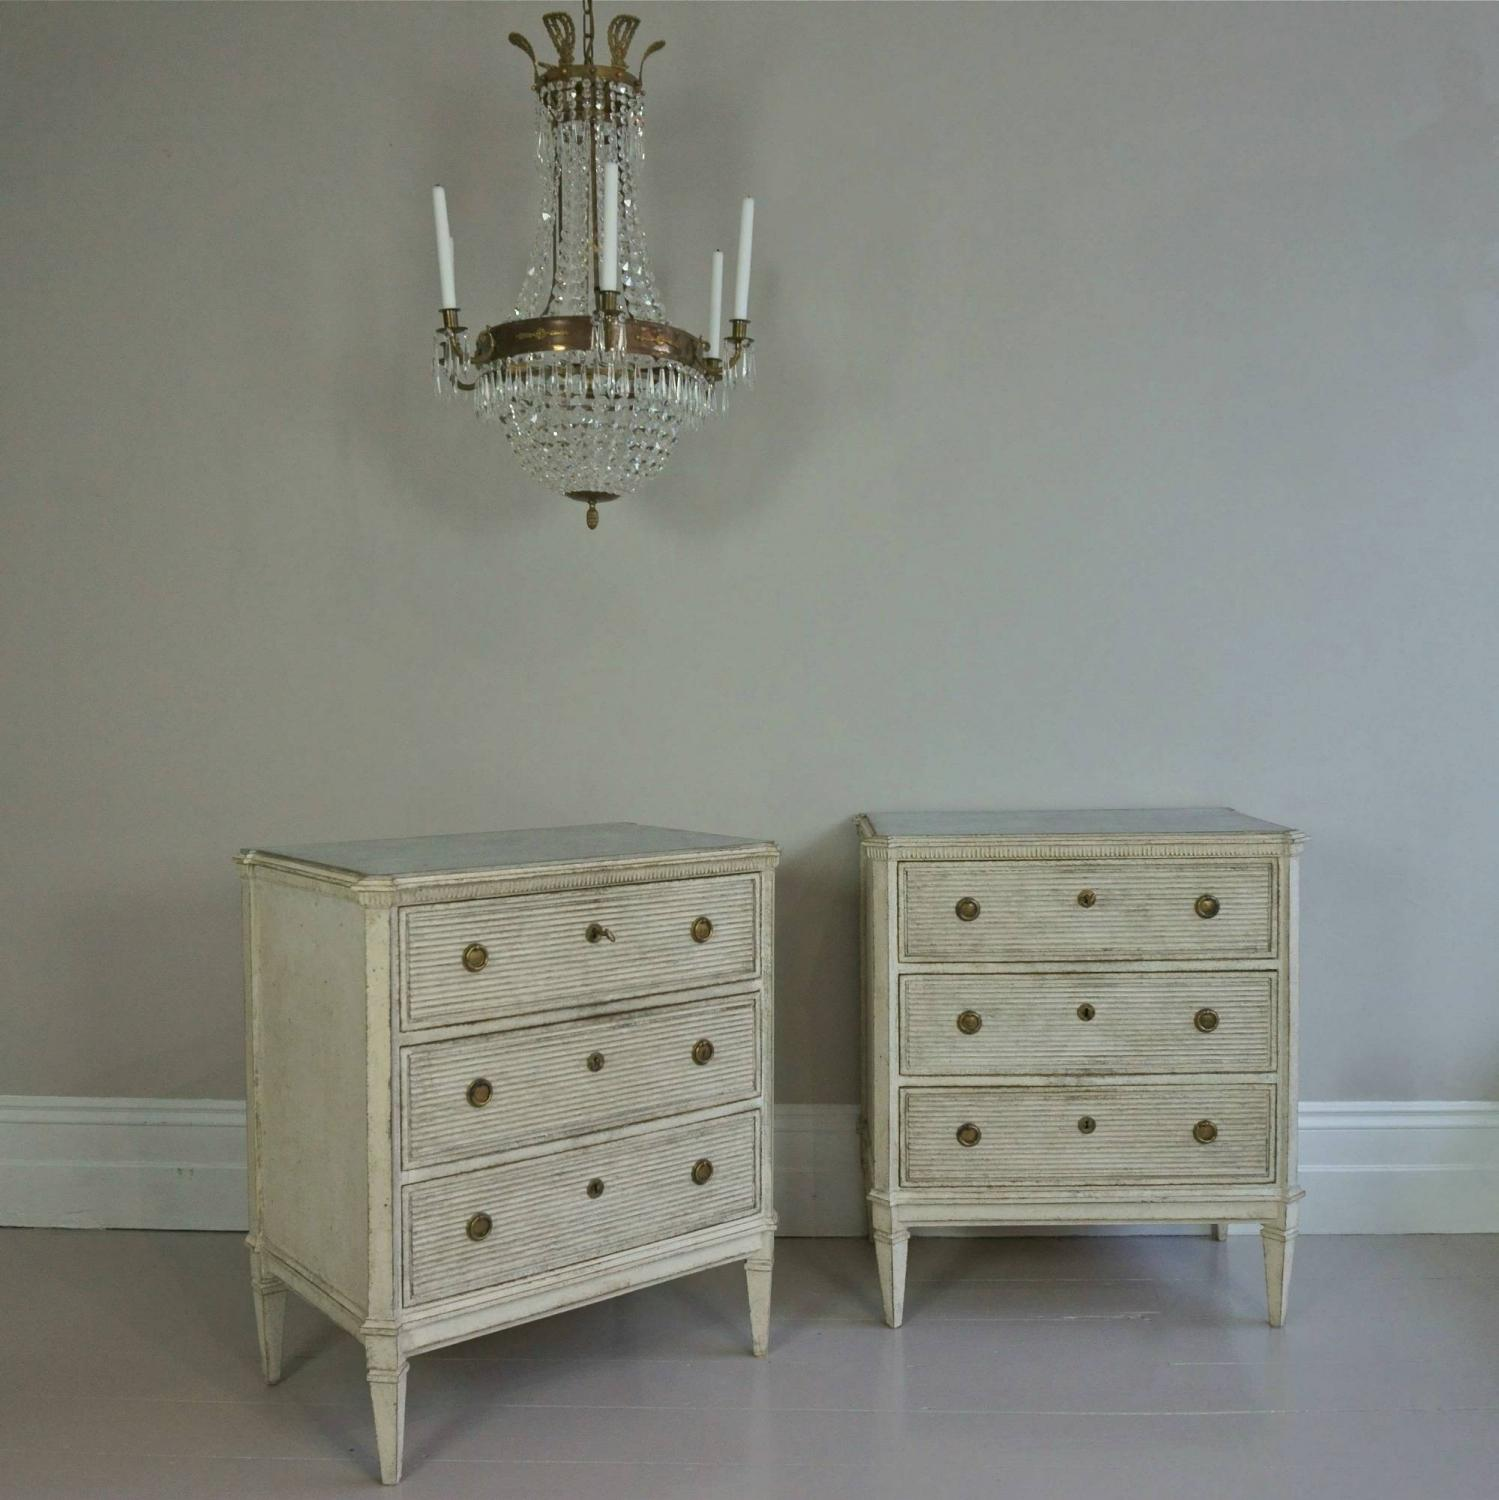 PAIR OF RICHLY CARVED SWEDISH GUSTAVIAN STYLE CHESTS